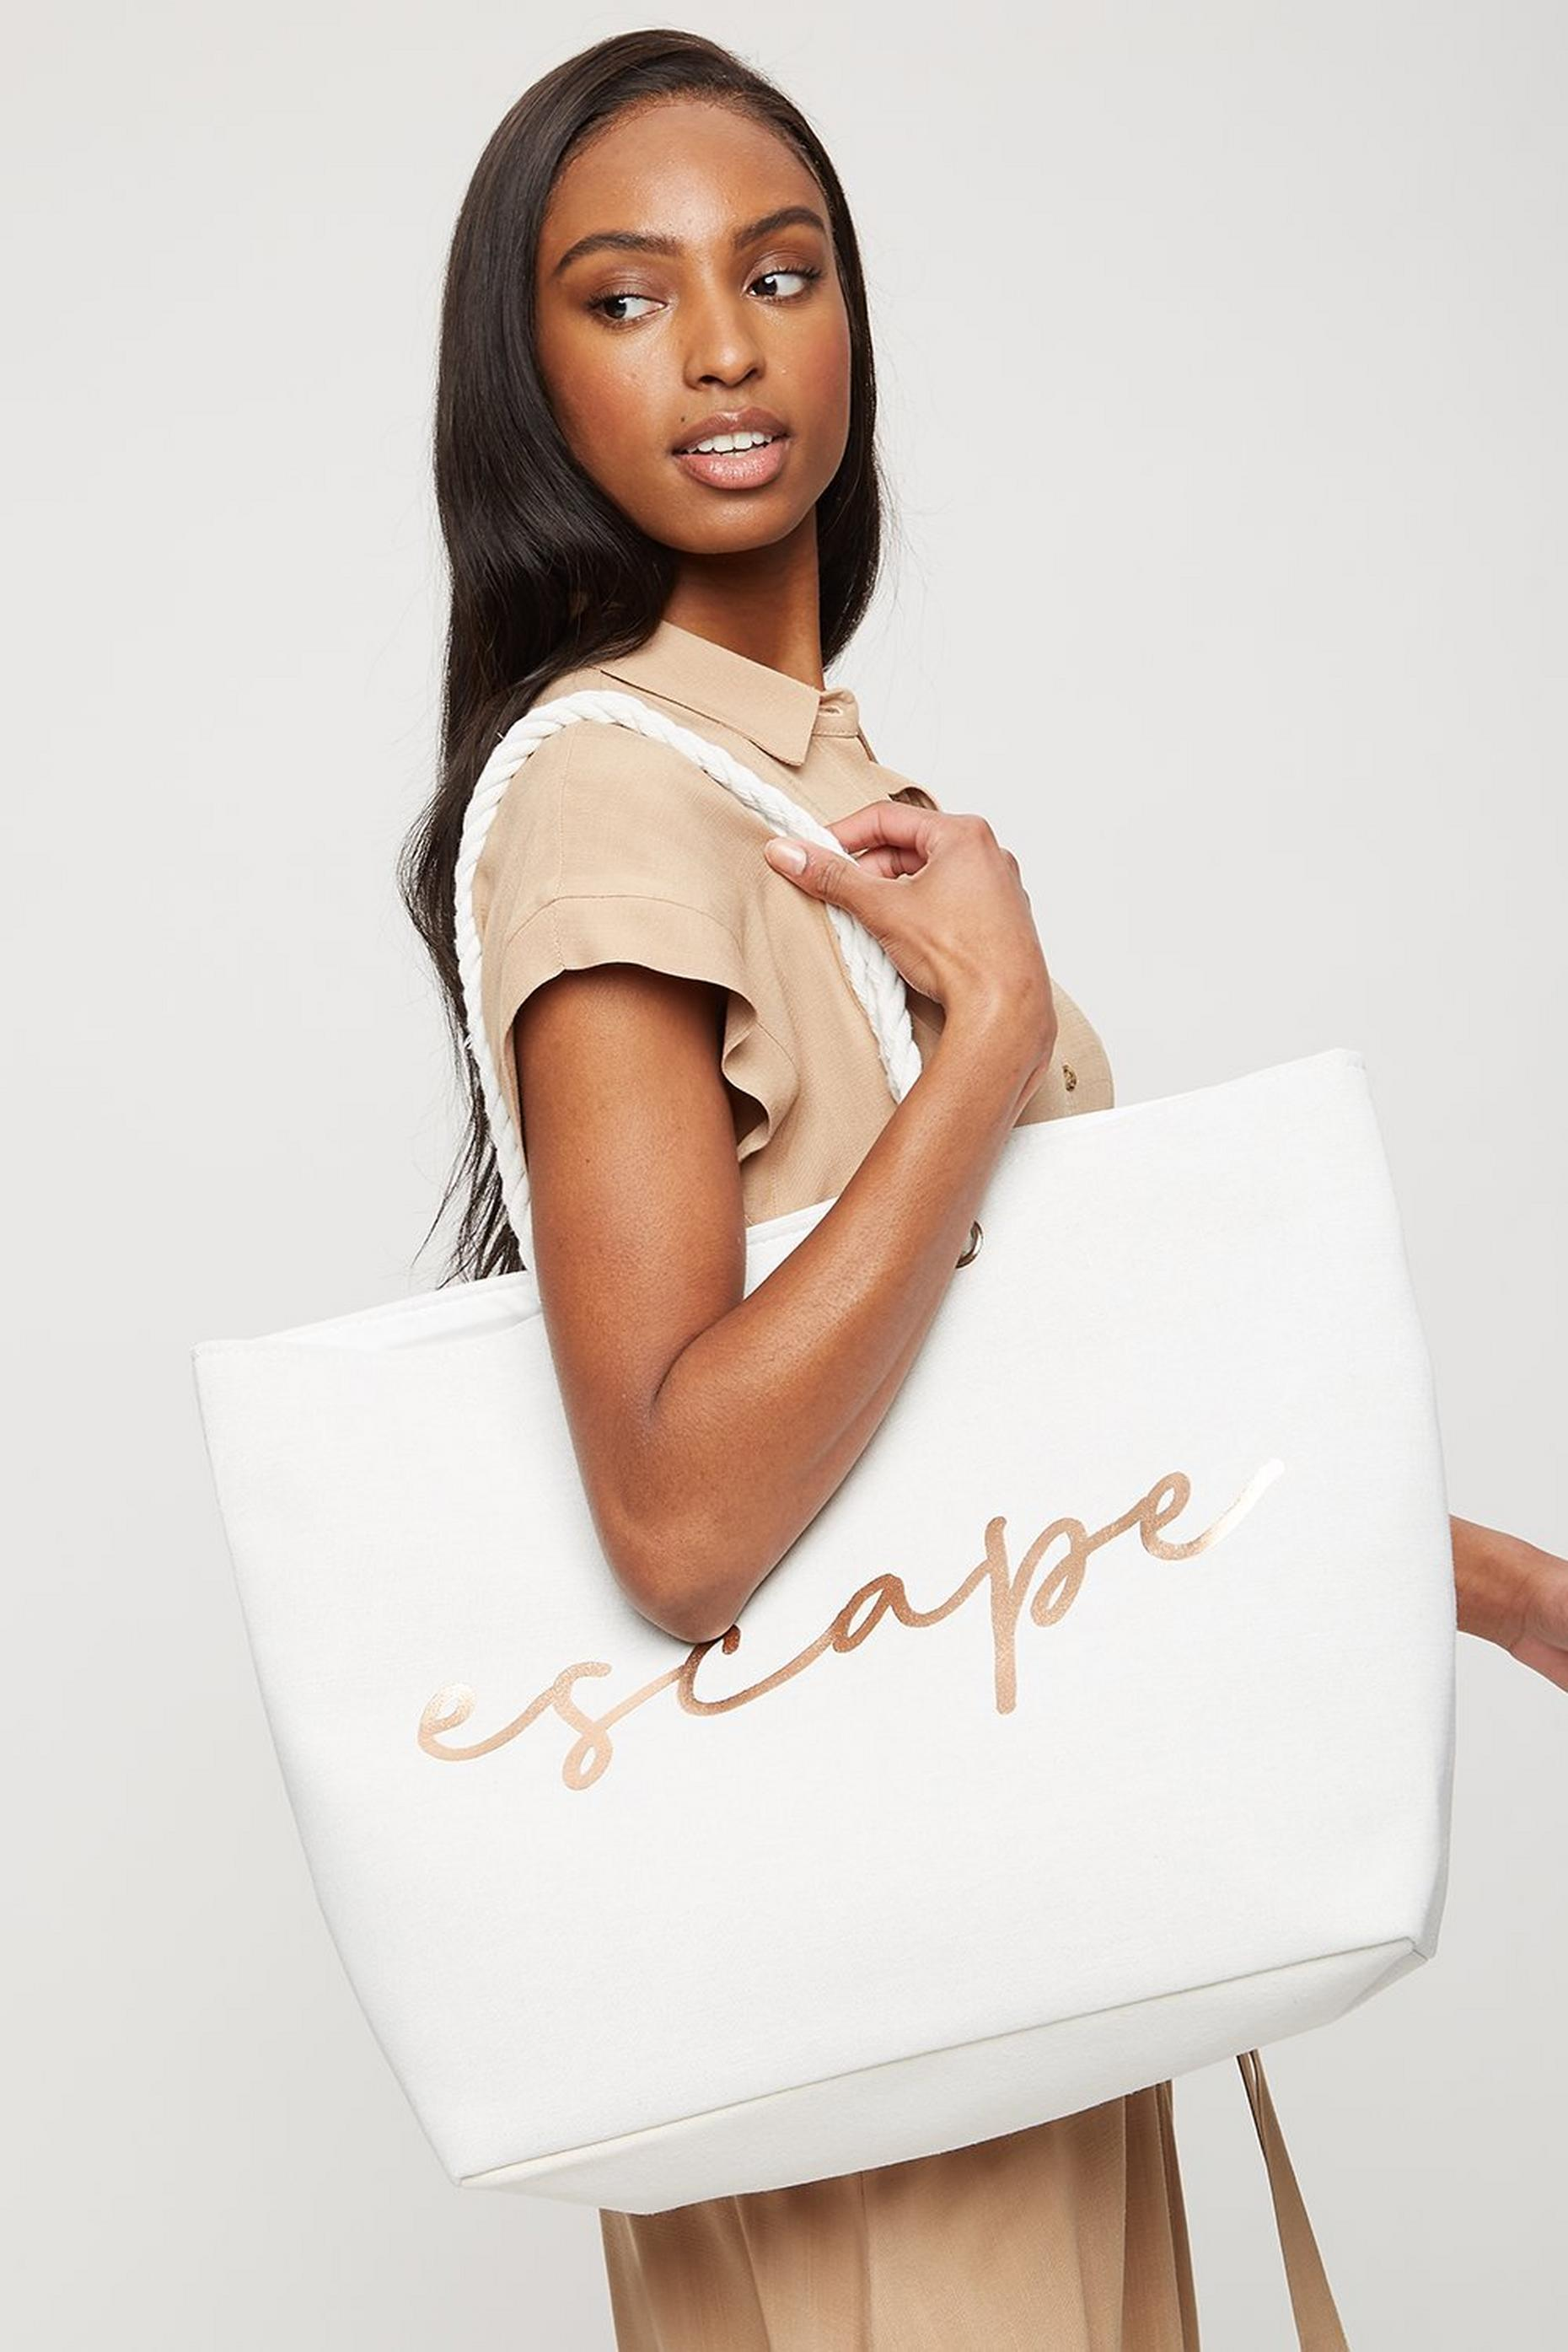 Southbeach 'Escape' Slogan Beach Bag